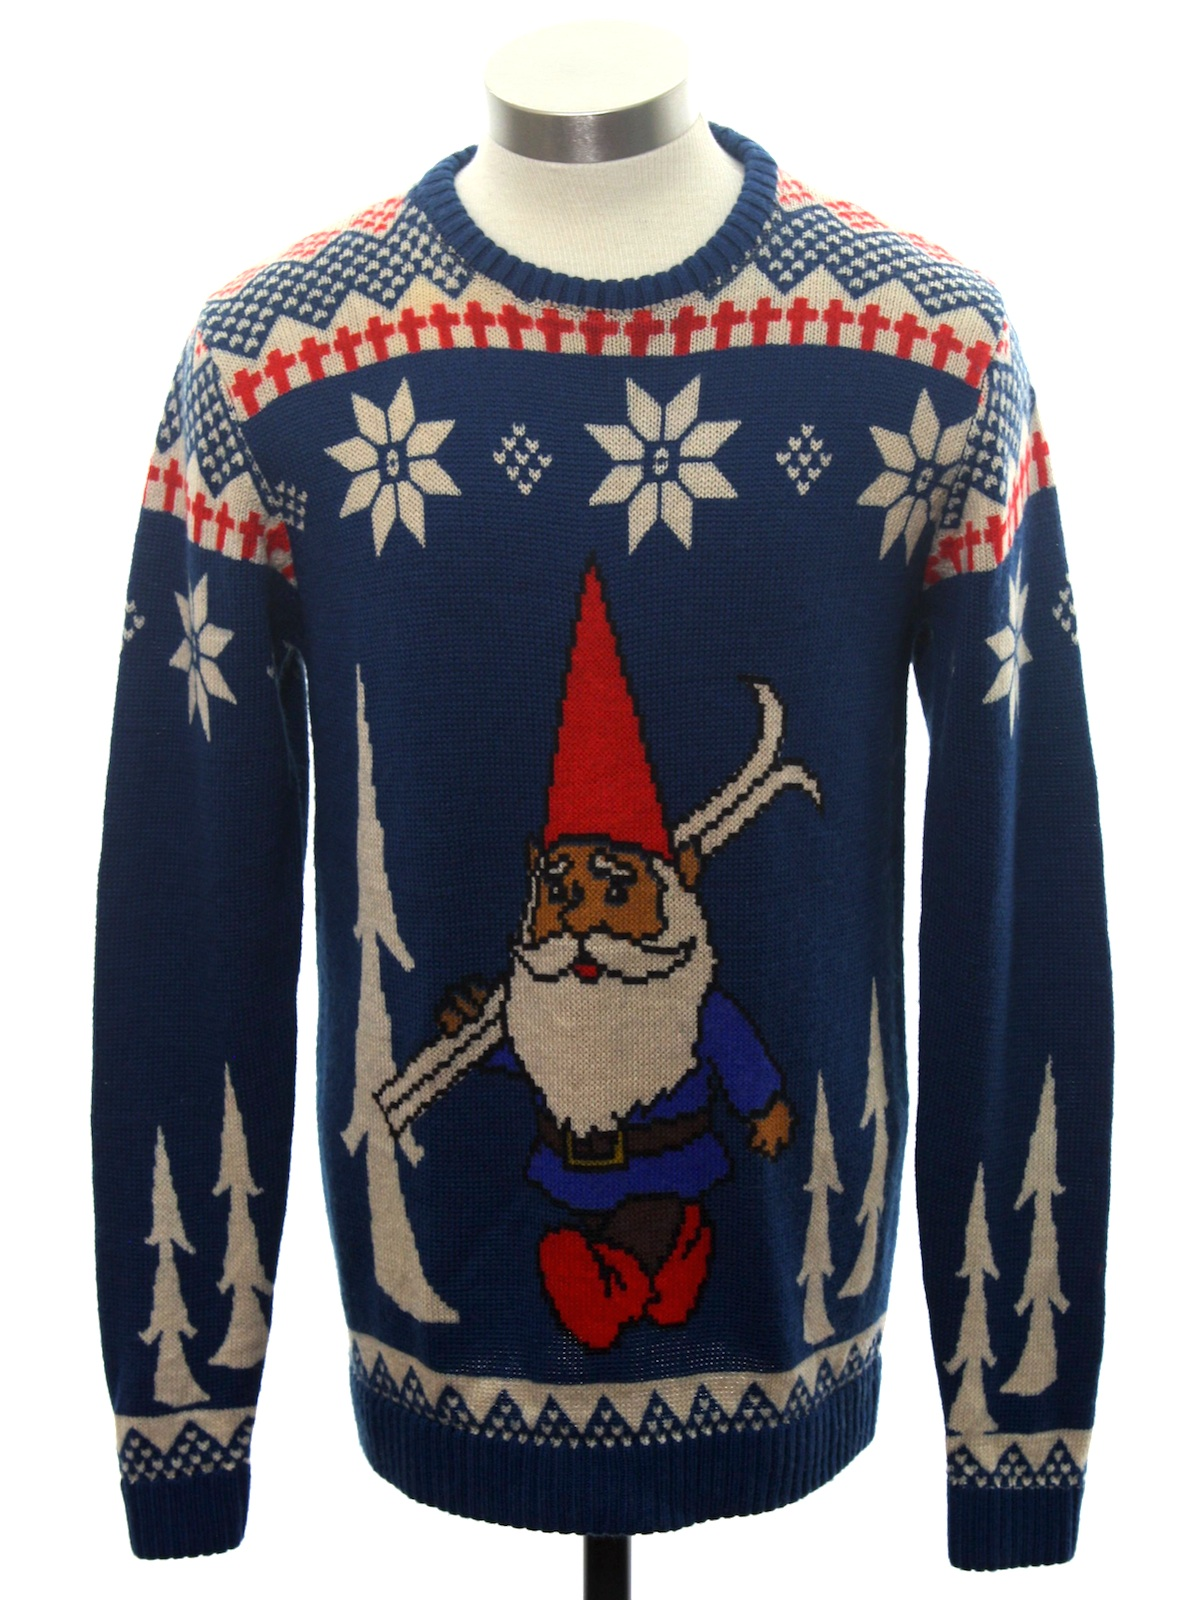 Toddland Mens/Boys Gnome Chomsky Ugly Christmas Sweater $58.00 Not in stock. Item No. 291396